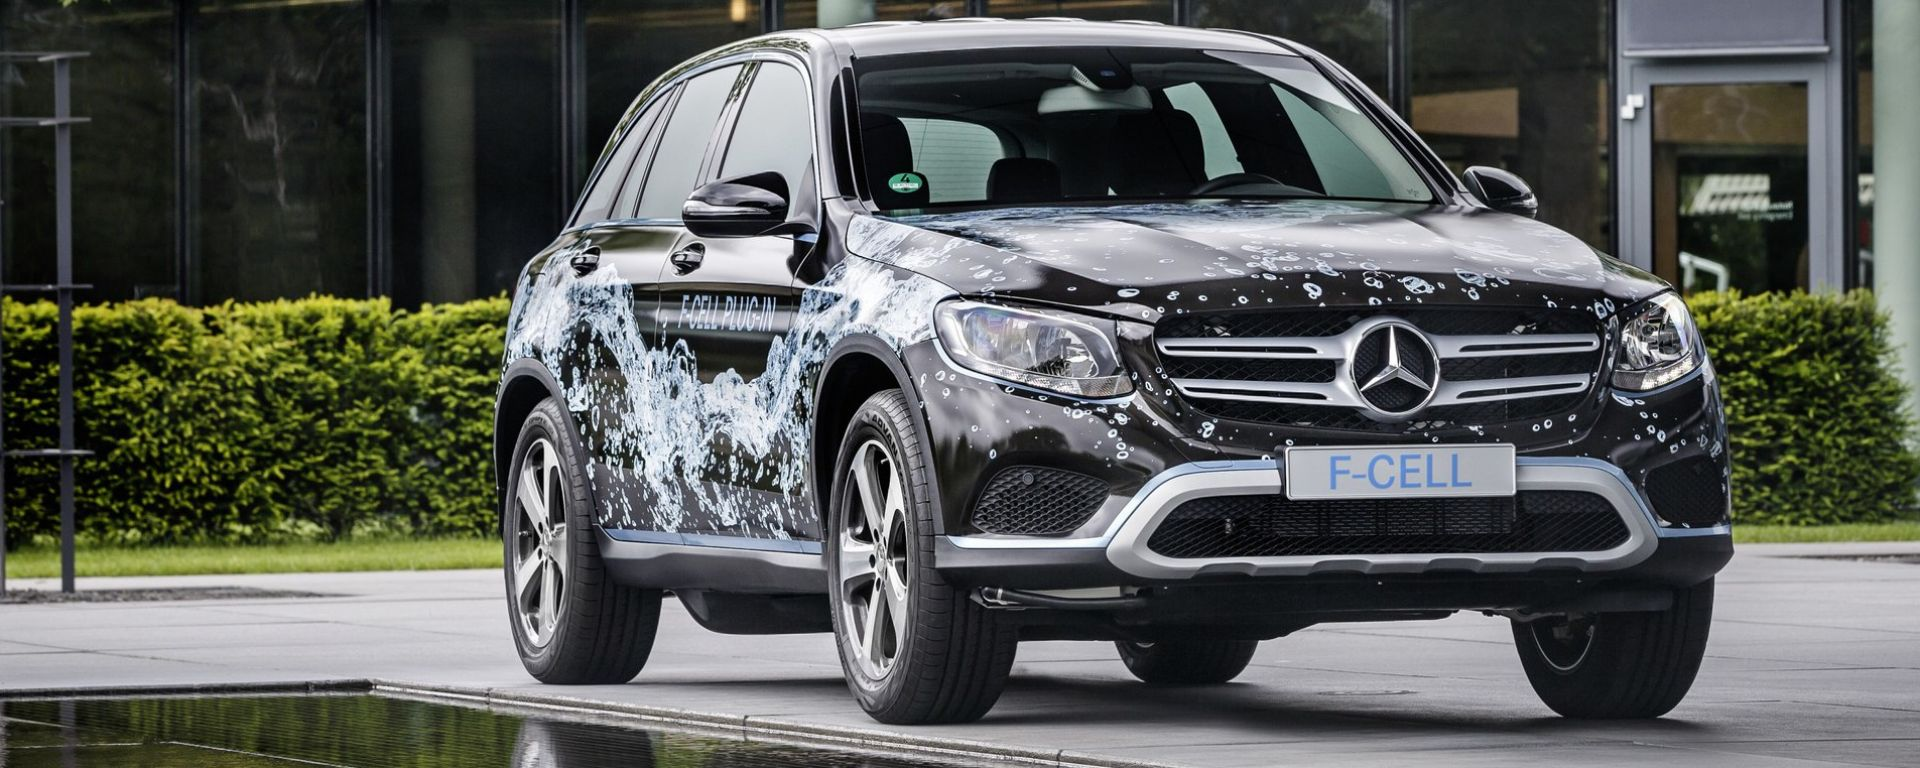 Tecday mercedes glc f cell a idrogeno e plug in arriva for Mercedes benz fuel cell